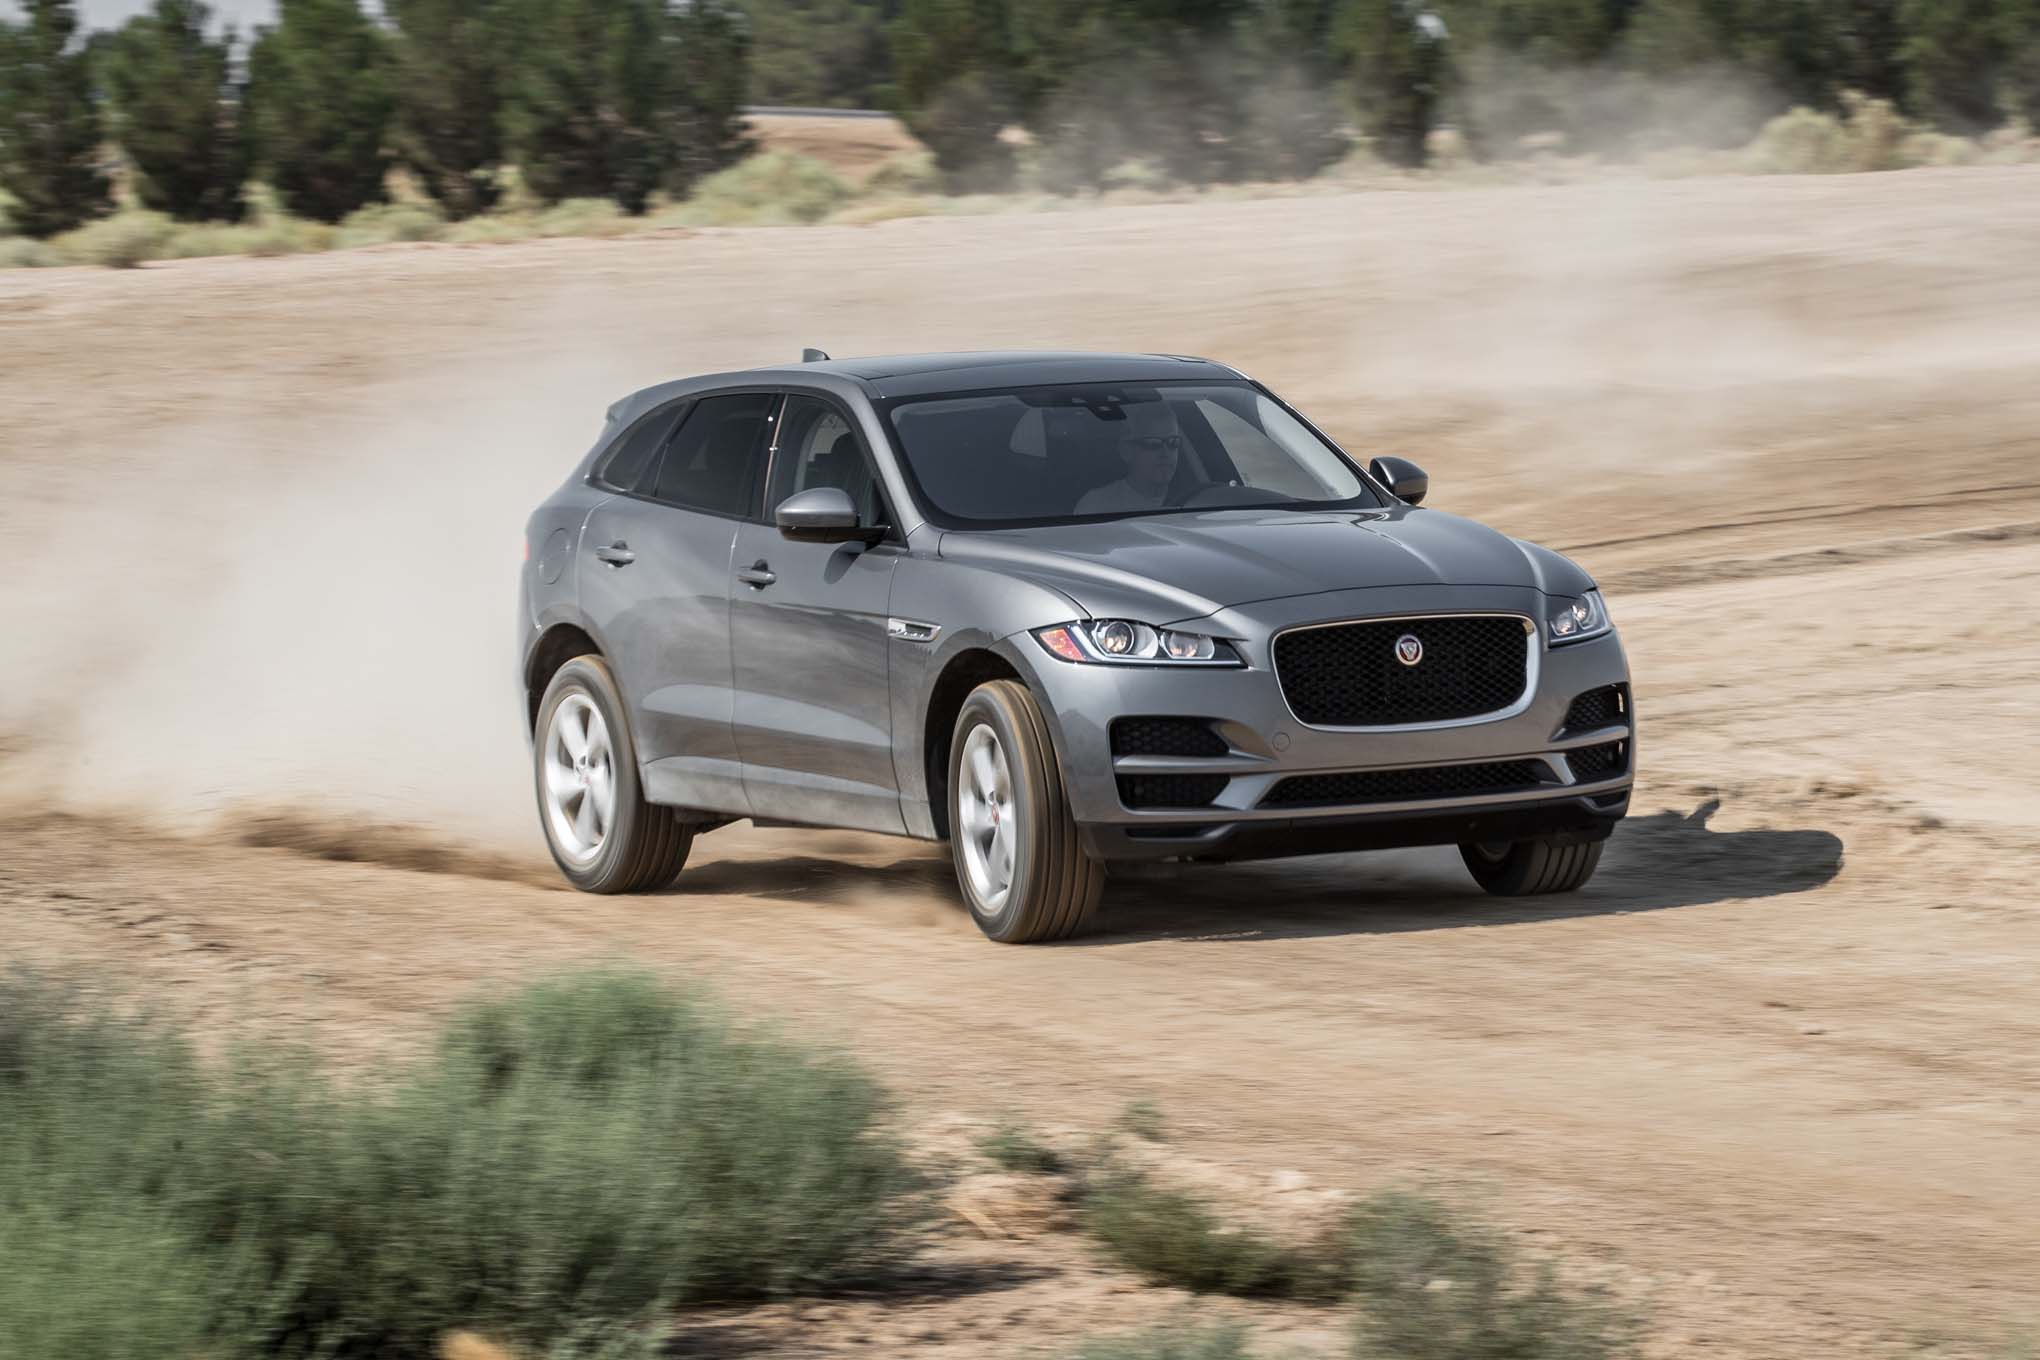 2017 Jaguar F Pace 35t AWD front three quarter in motion 02 1